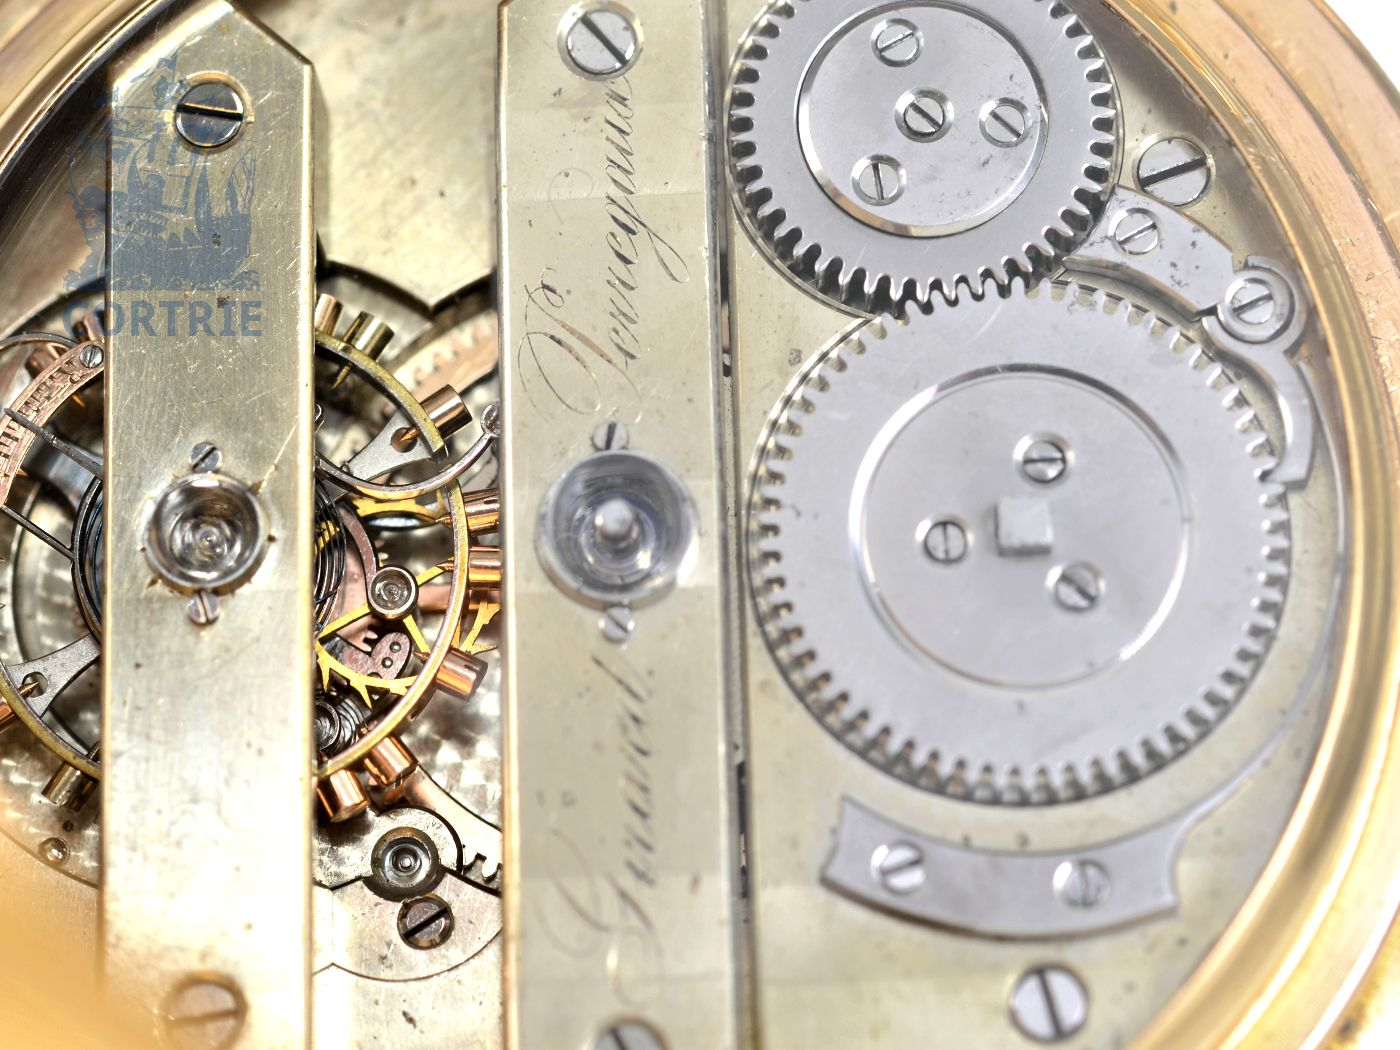 Pocket watch: Girard Perregaux gold hunting case watch with tourbillon, very rare construction, ca. 1884-